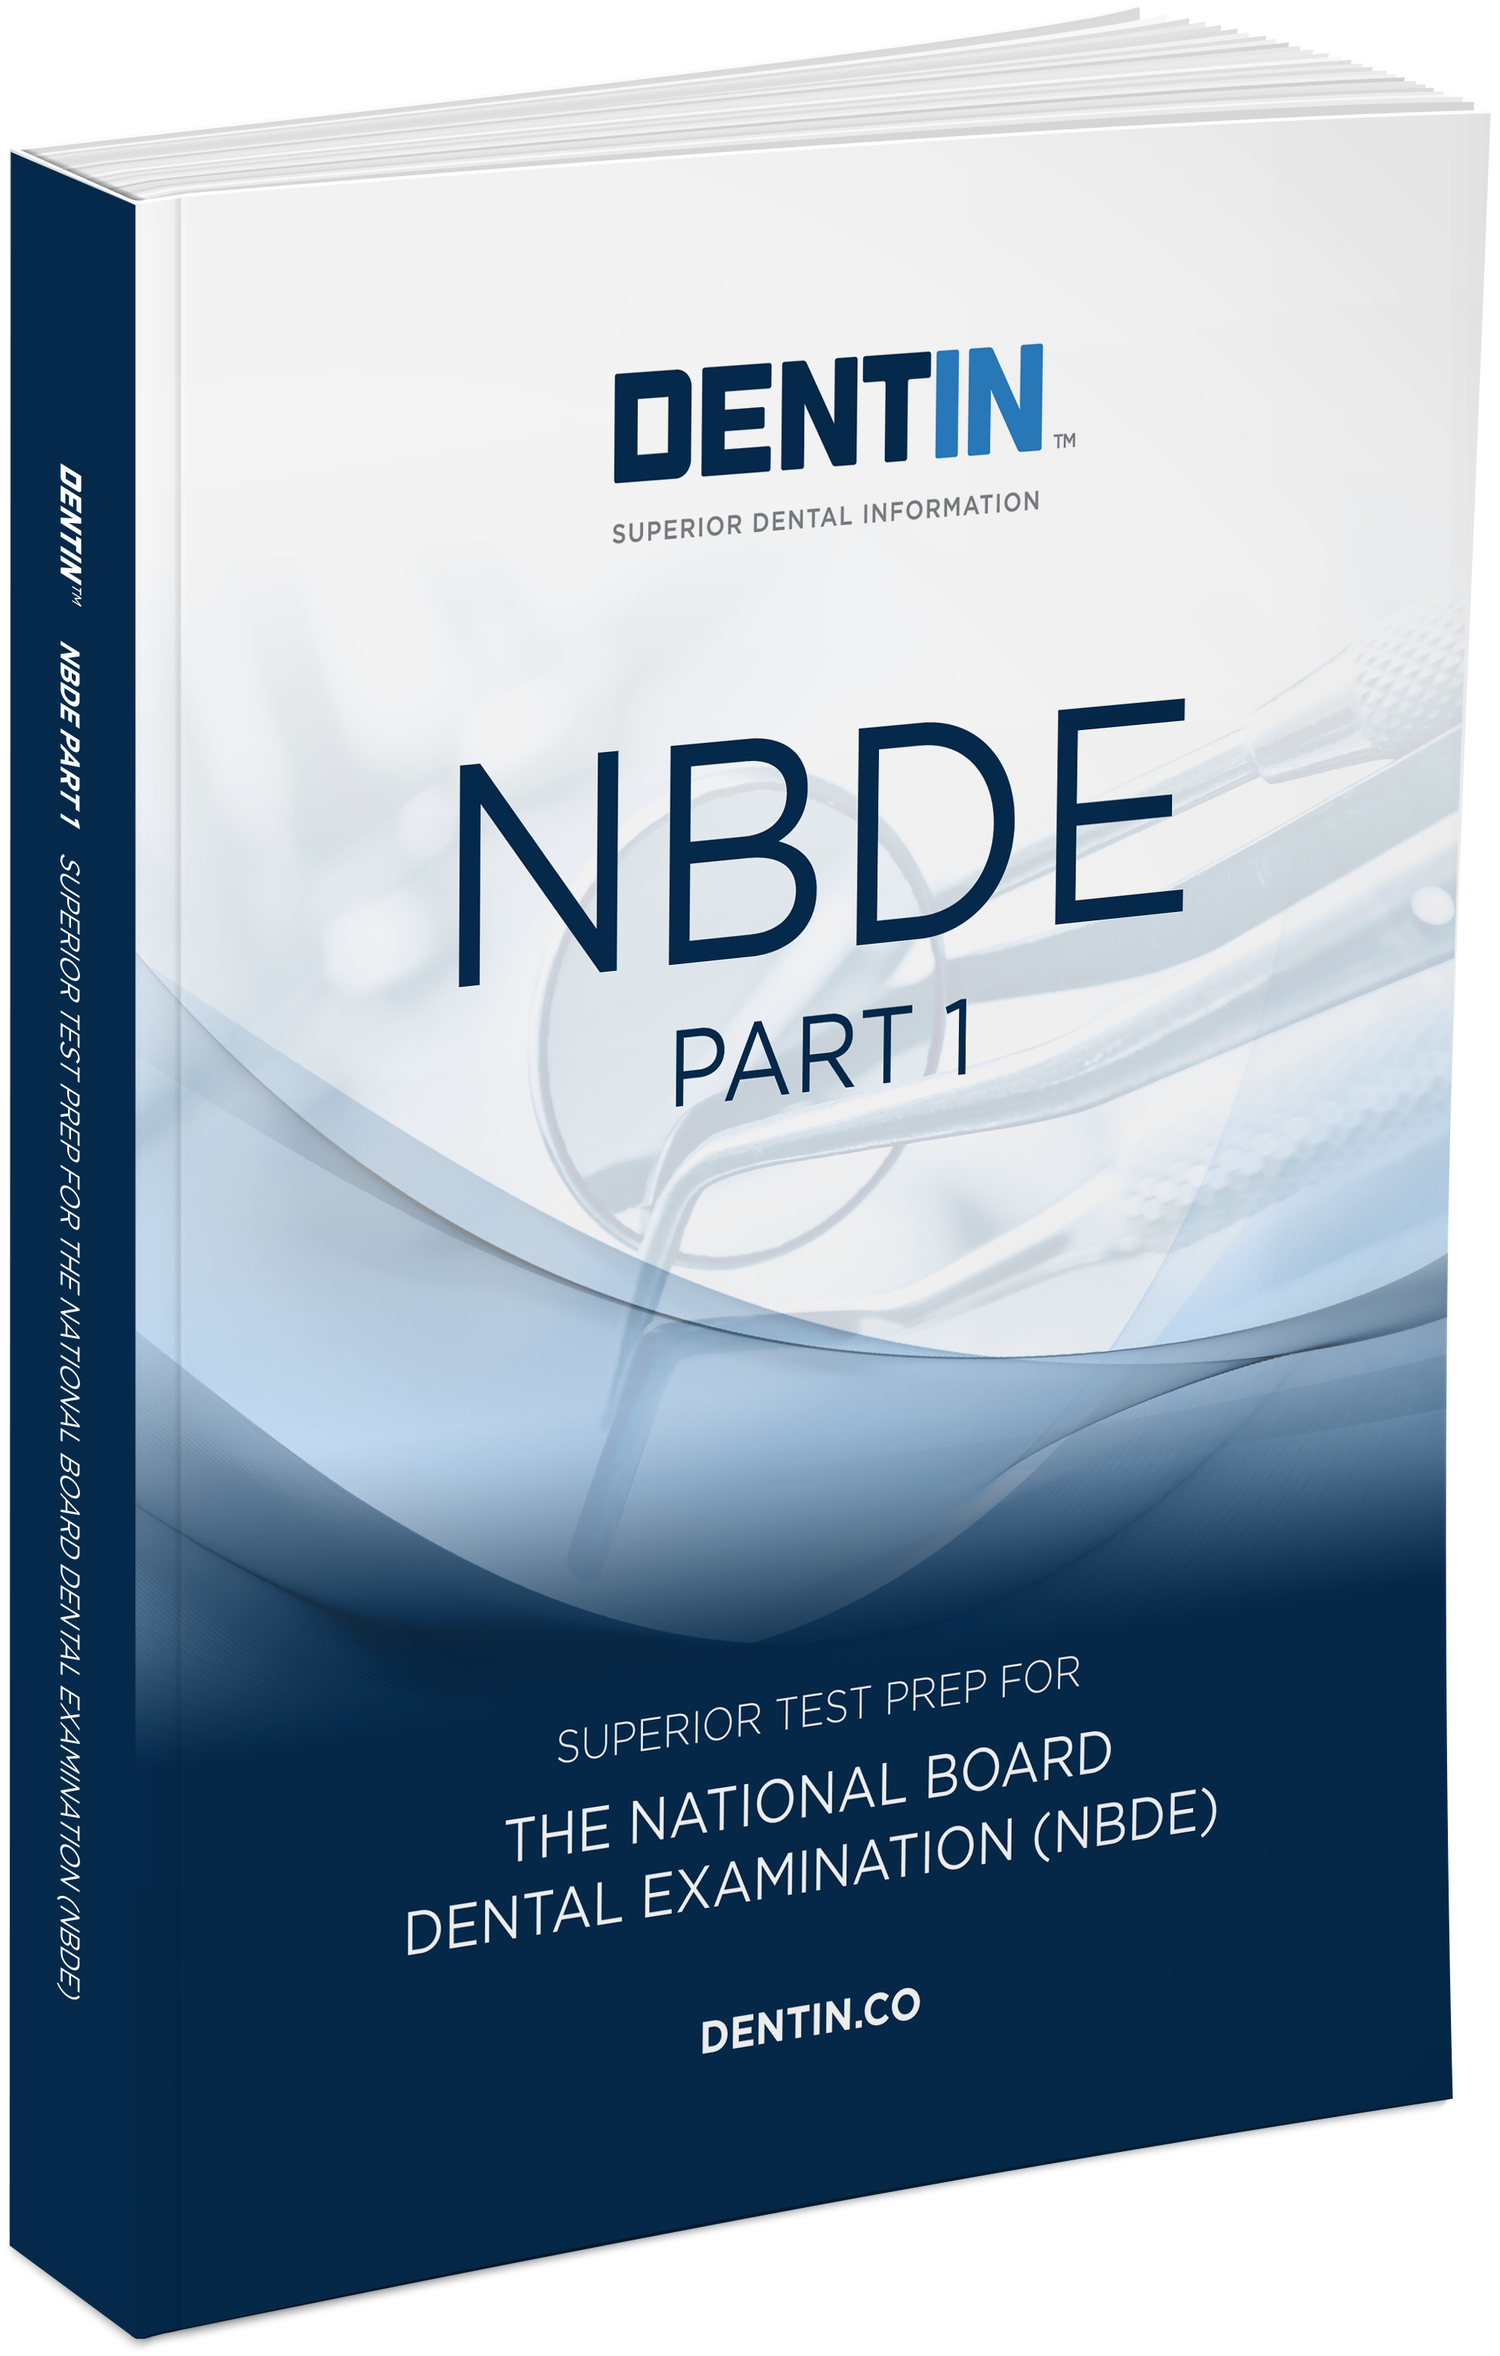 NBDE PART 1 (with Free Ebook) 2019 — Dentin | The Leader in Dental Exam  Preparation